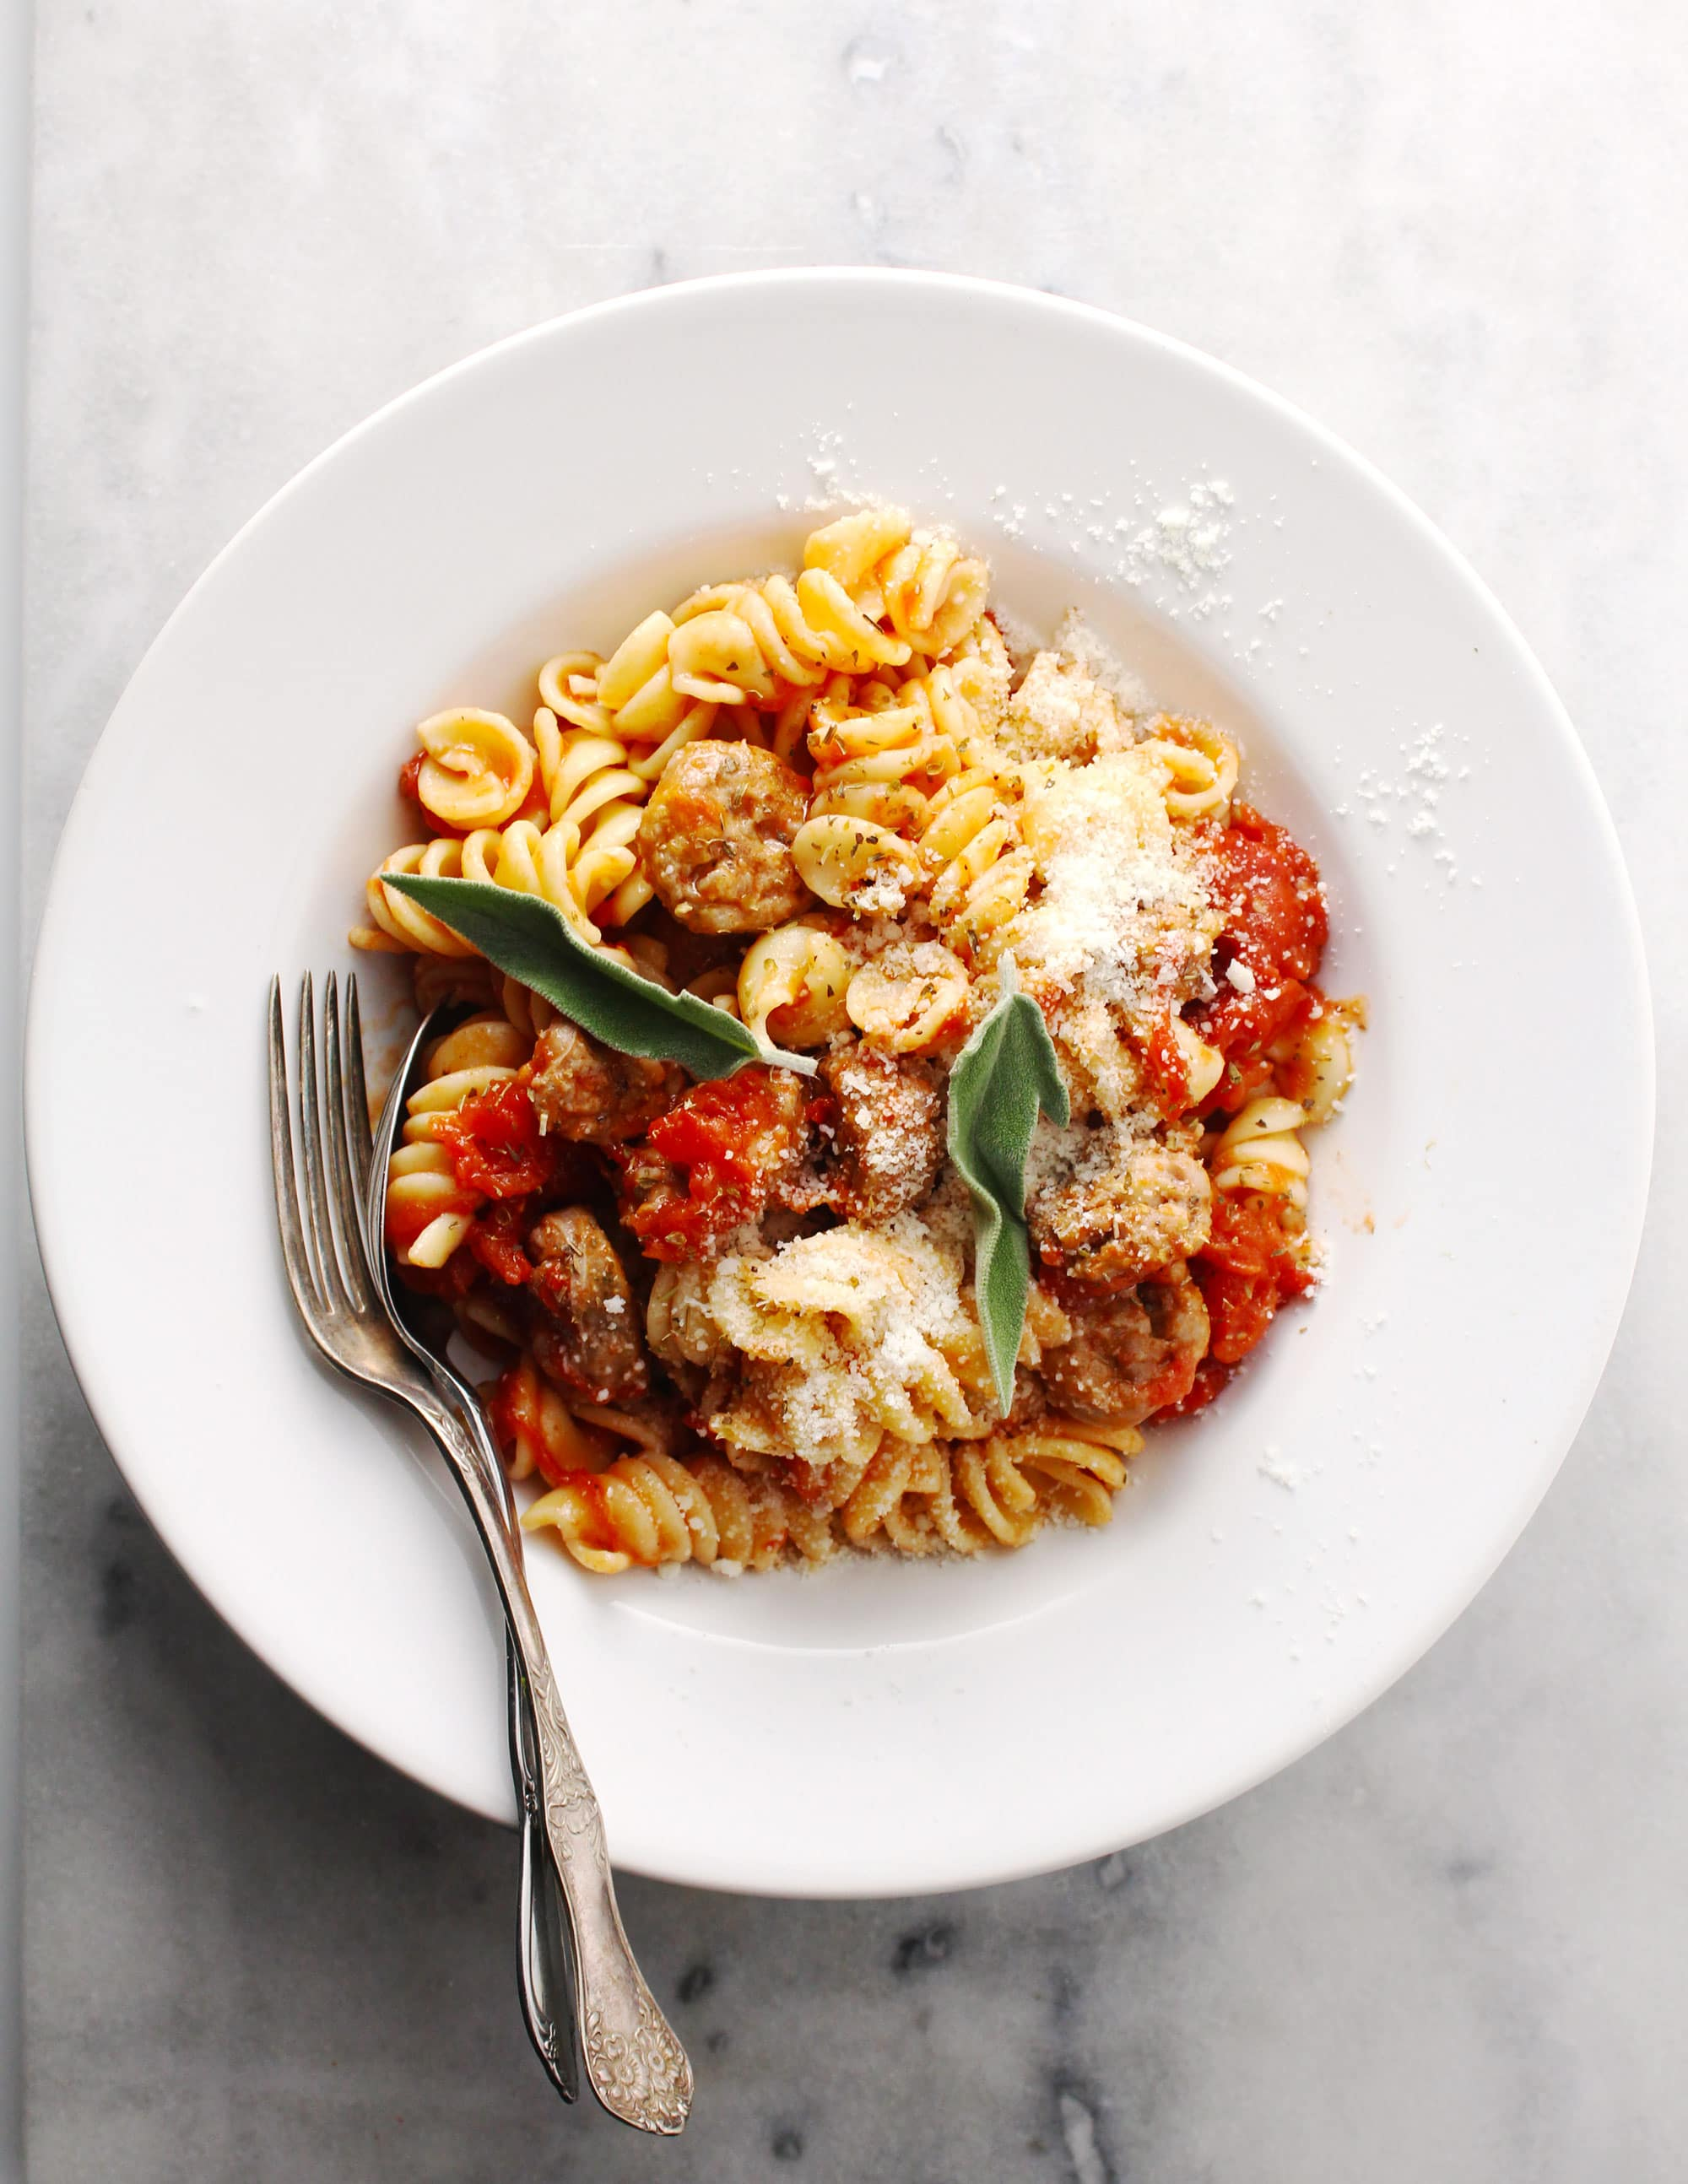 Sausage Pasta Pomodoro in a white bowl with two forks.